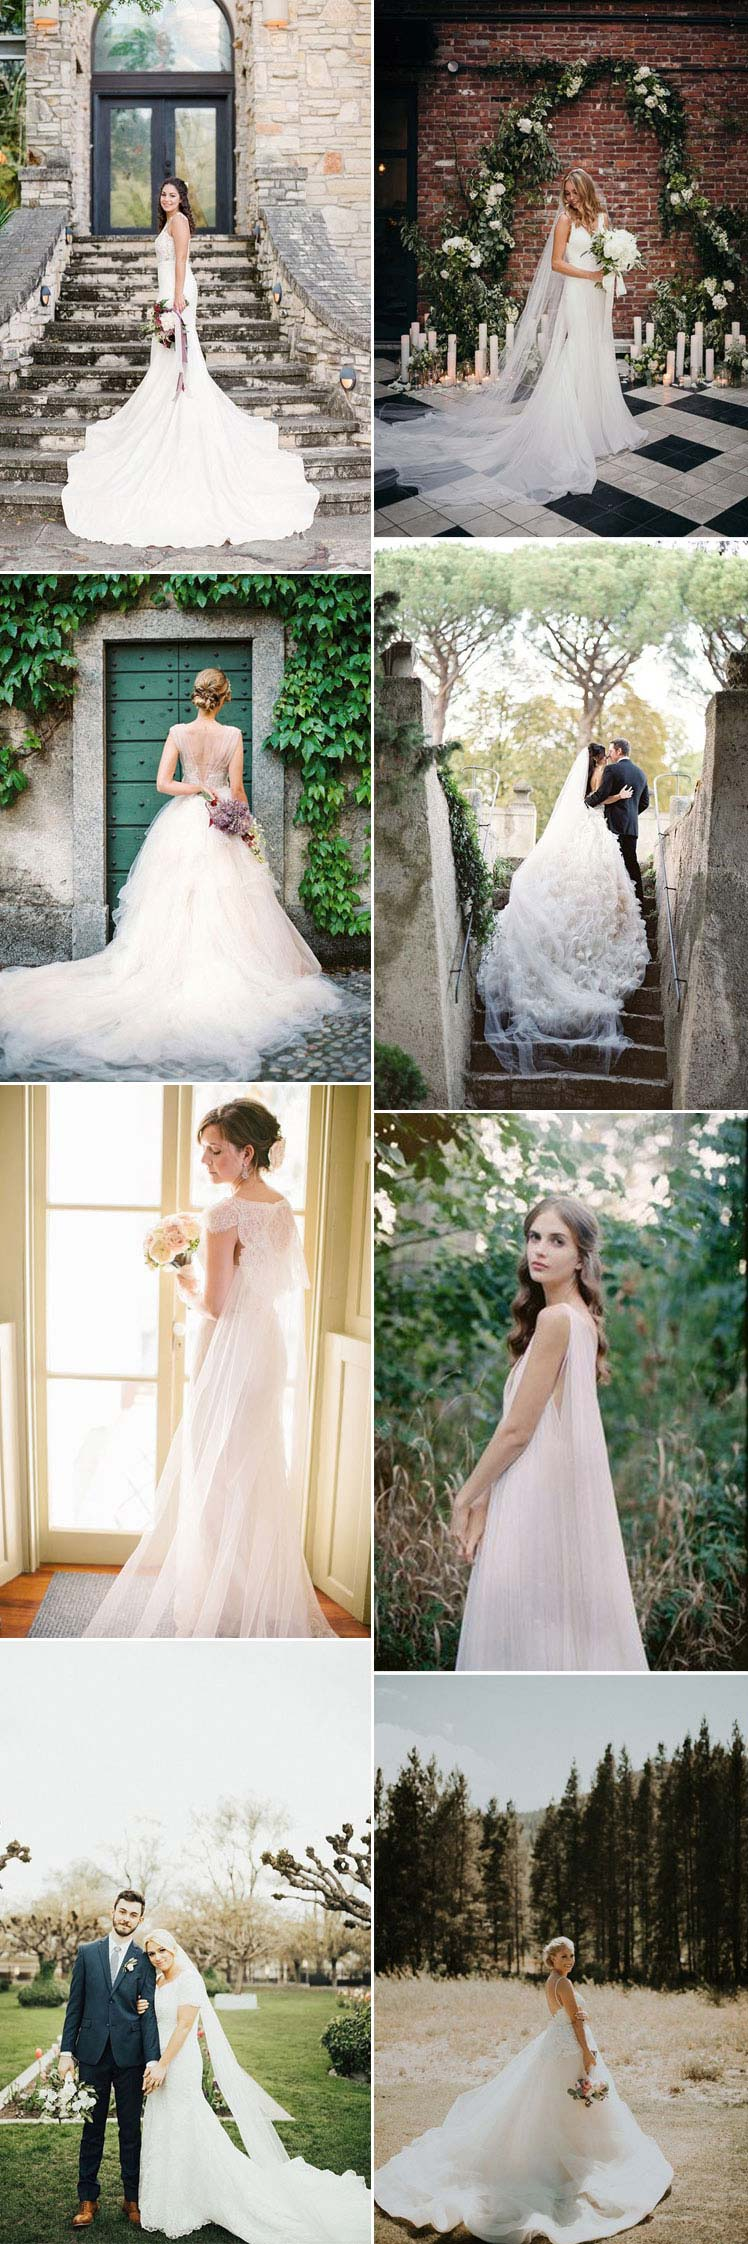 Inspiration for choosing a wedding dress with a train